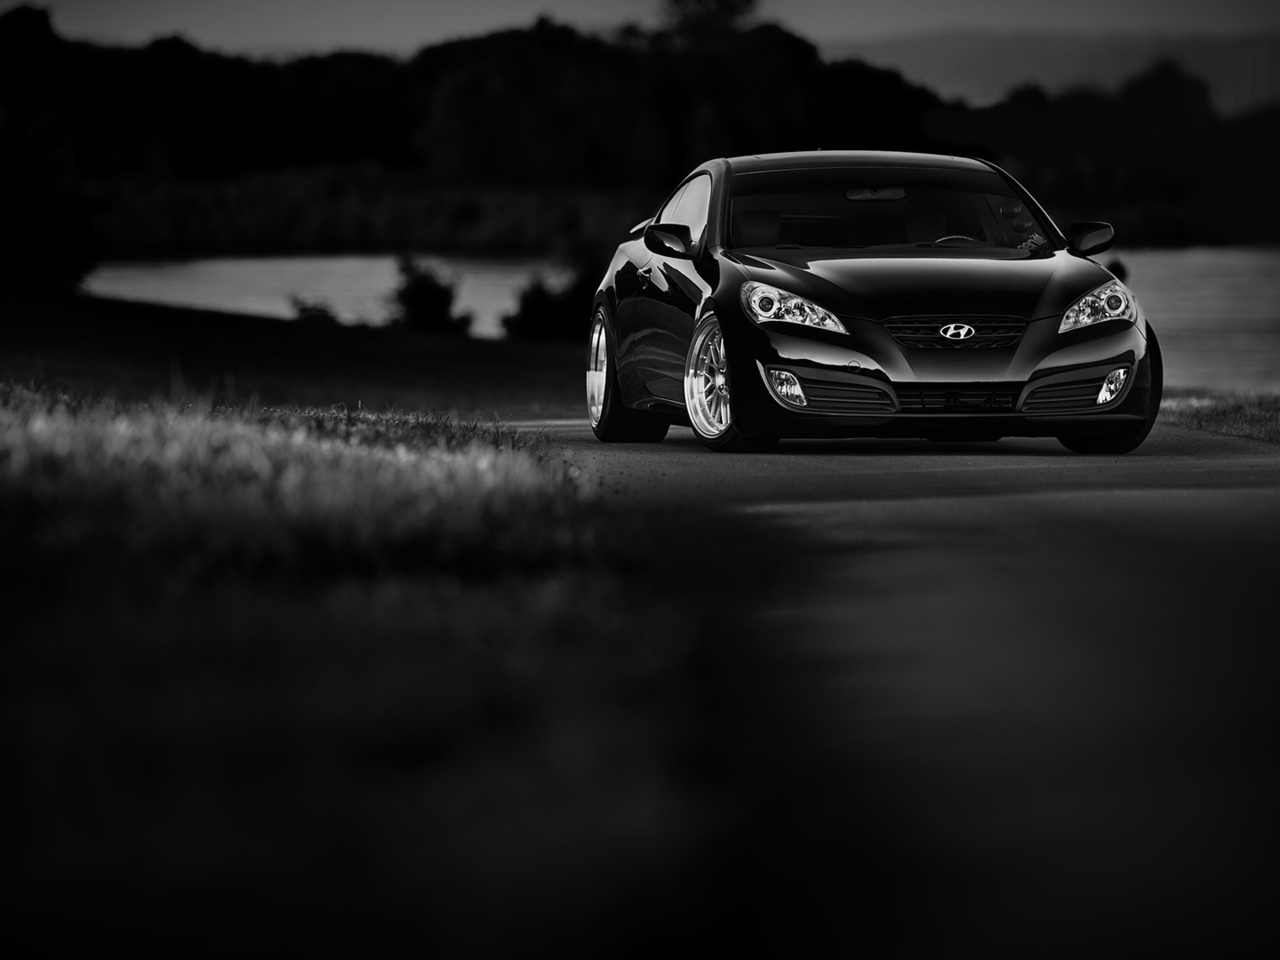 hyundai, coupe, black, white, genesis